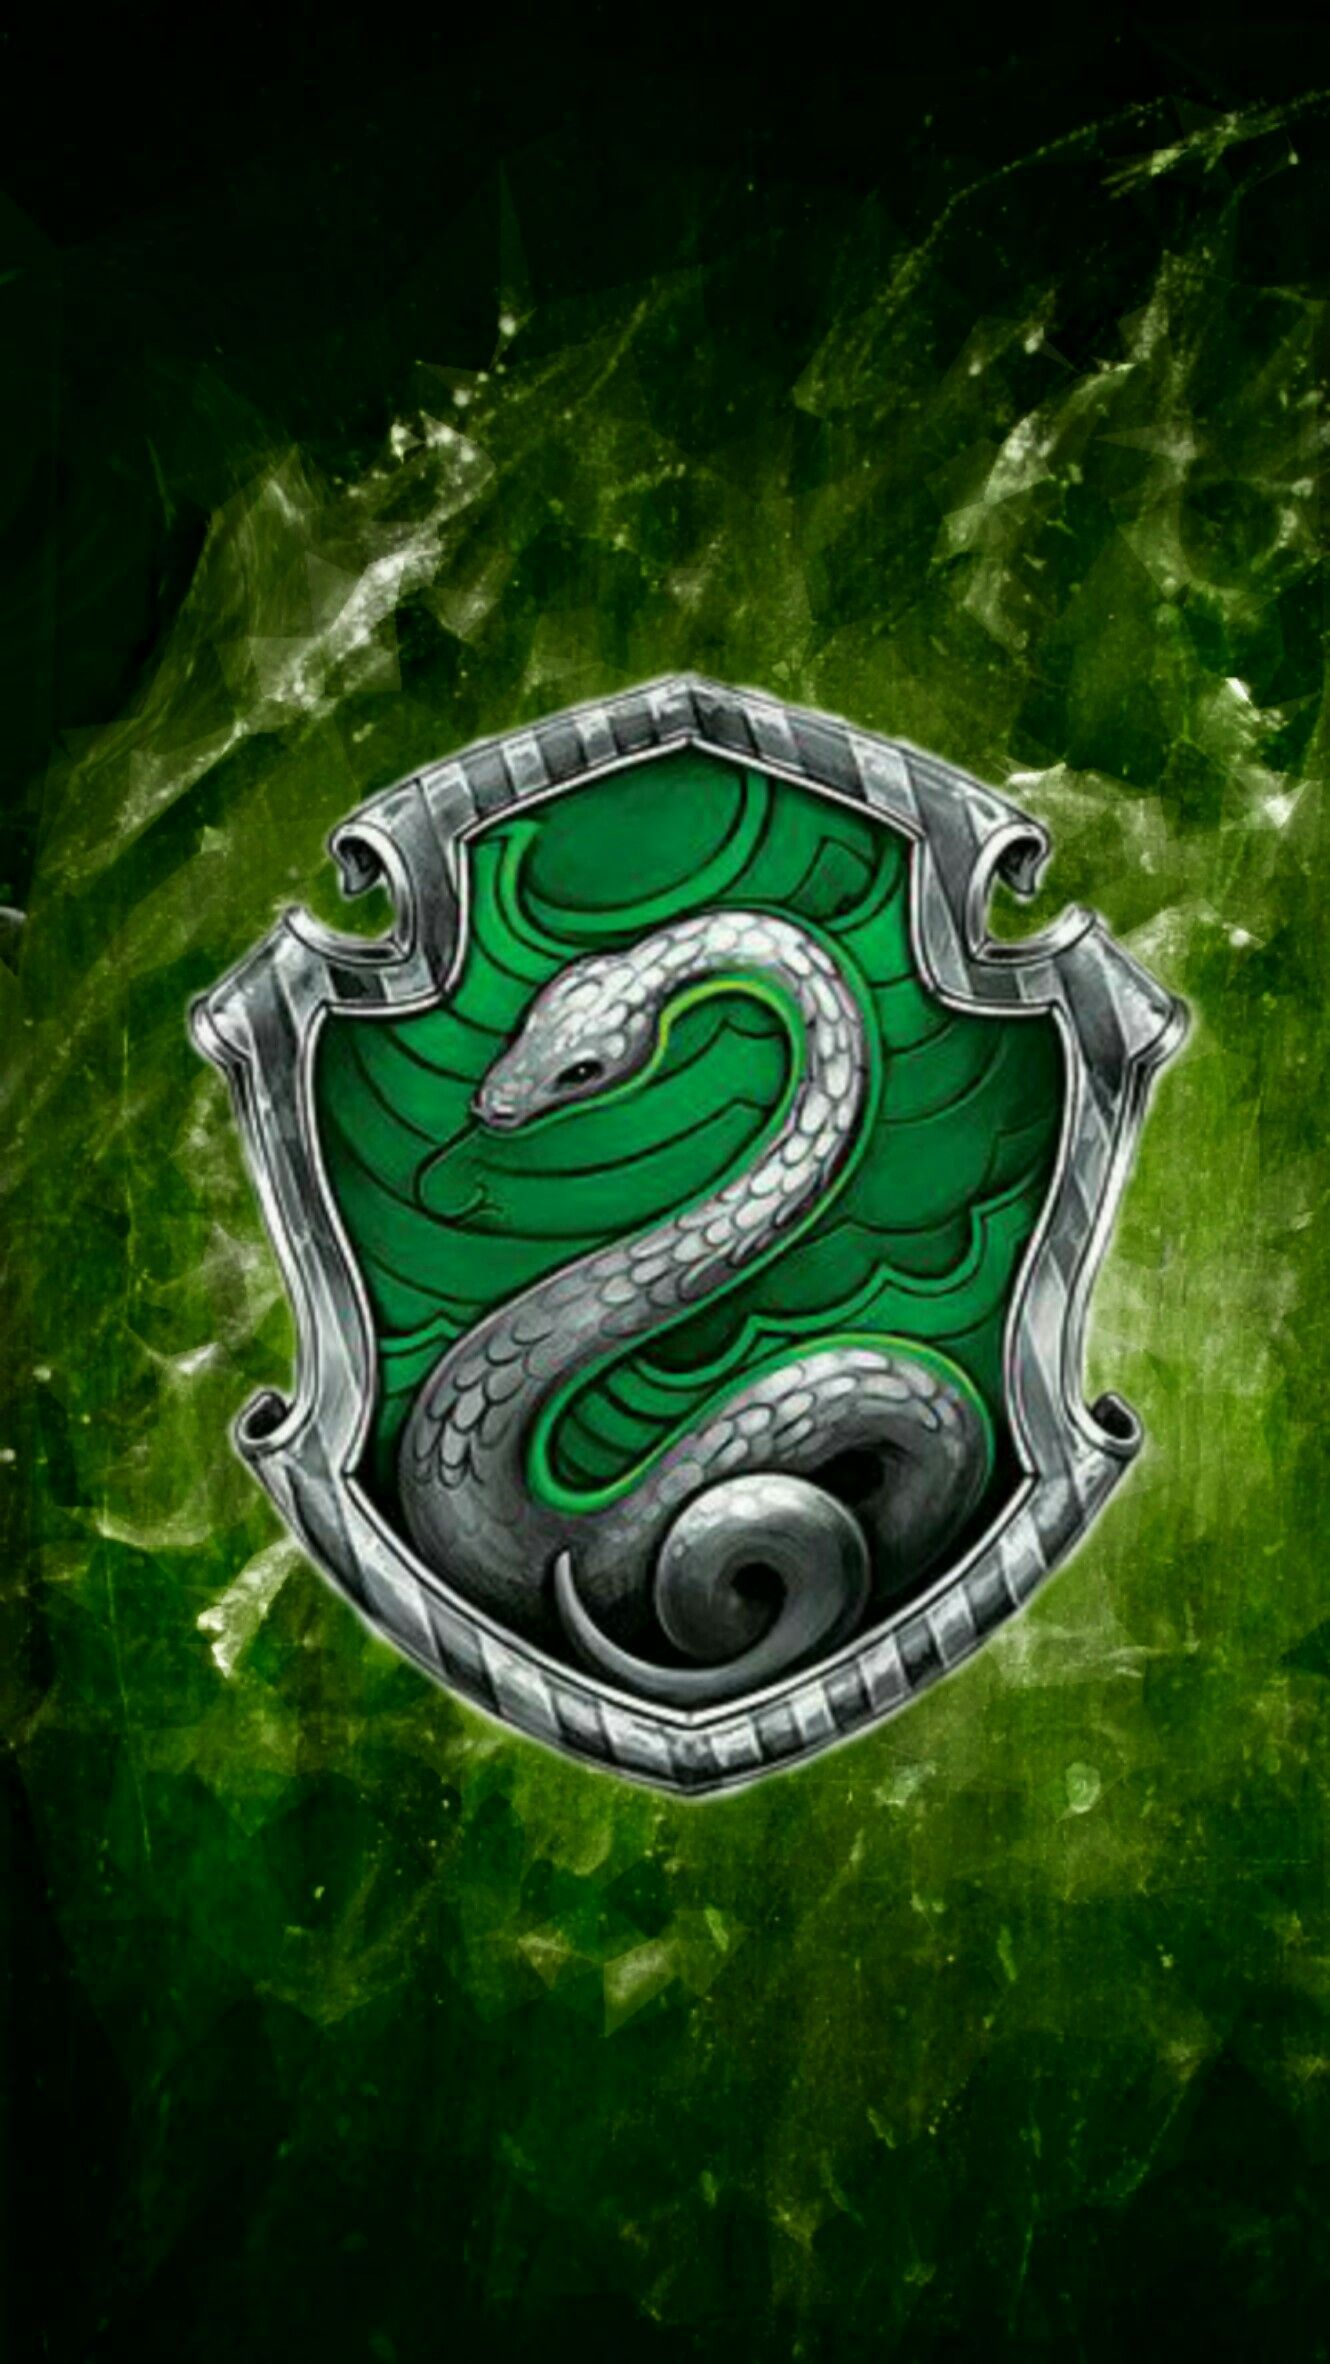 Slytherin Pottermore 2379429 Hd Wallpaper Backgrounds Download